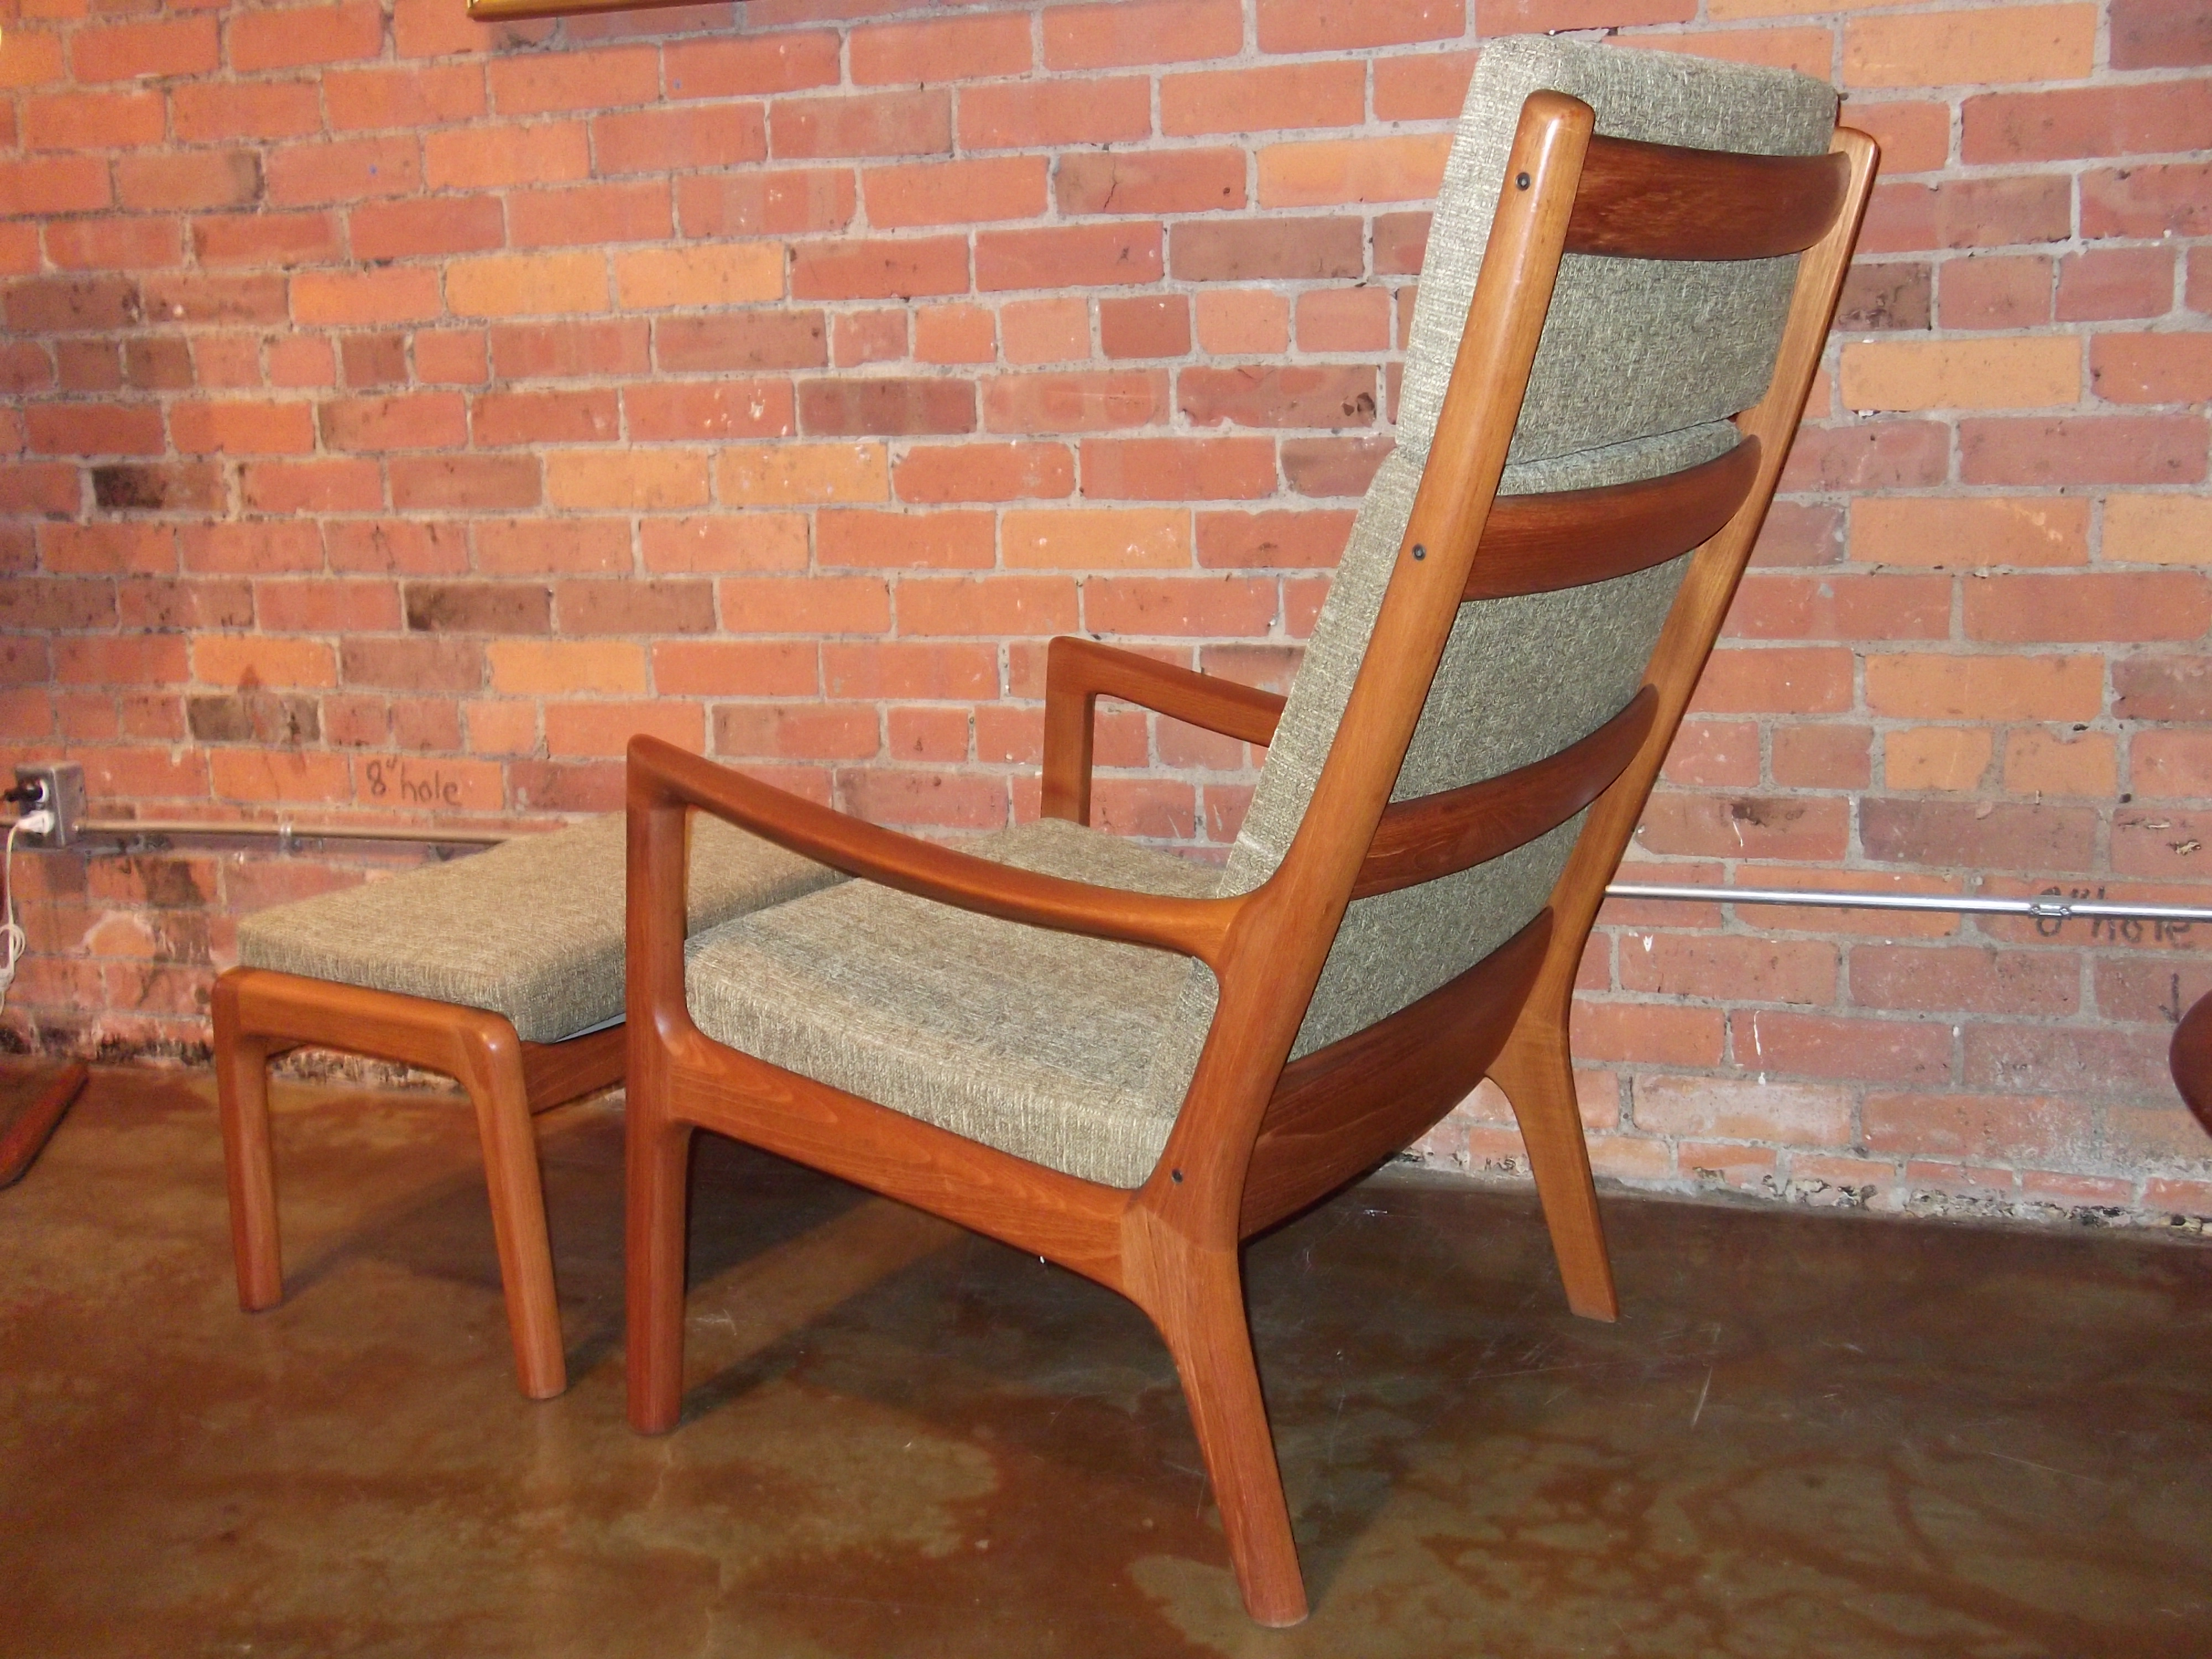 Outstanding Mid century modern teak high back lounge chair and ottoman  designed by Ole Wanscher. The Fabulous Find   Mid Century Modern Furniture Showroom in